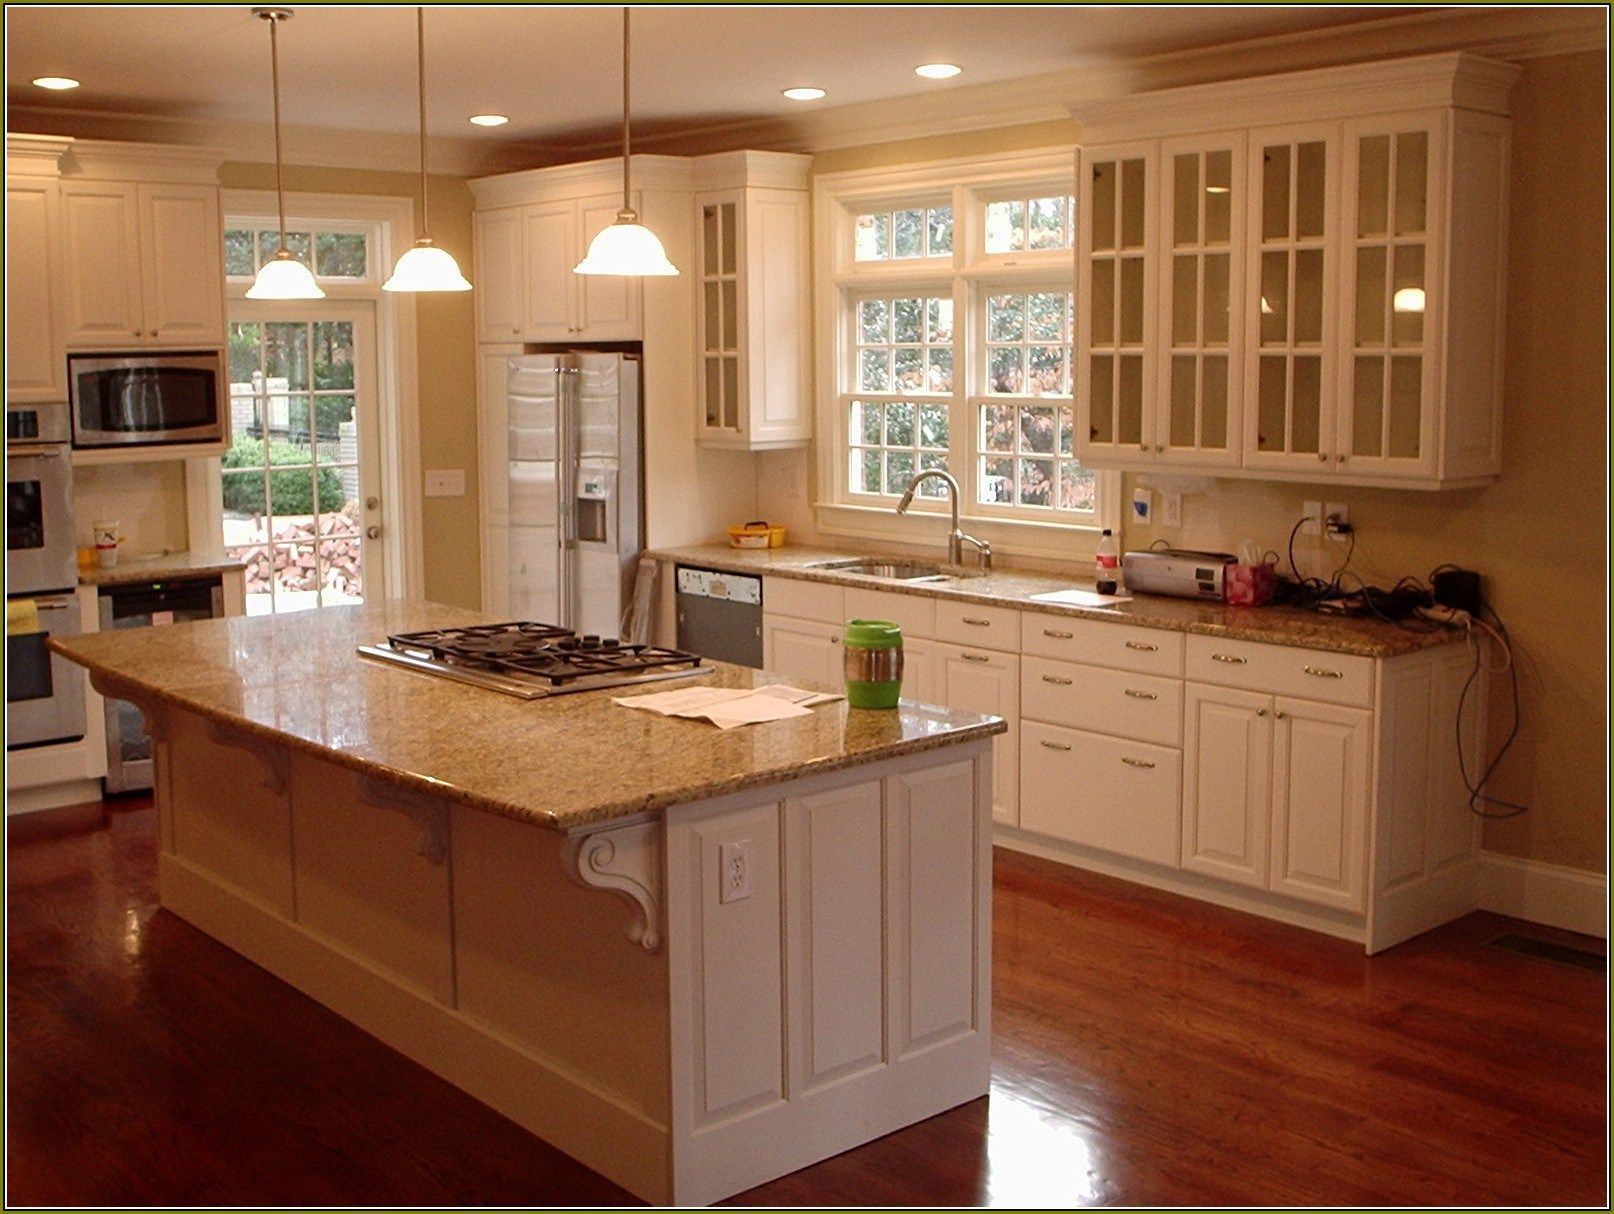 Home Depot Kitchen Cabinets Home Design Ideas Refacing Refinishing